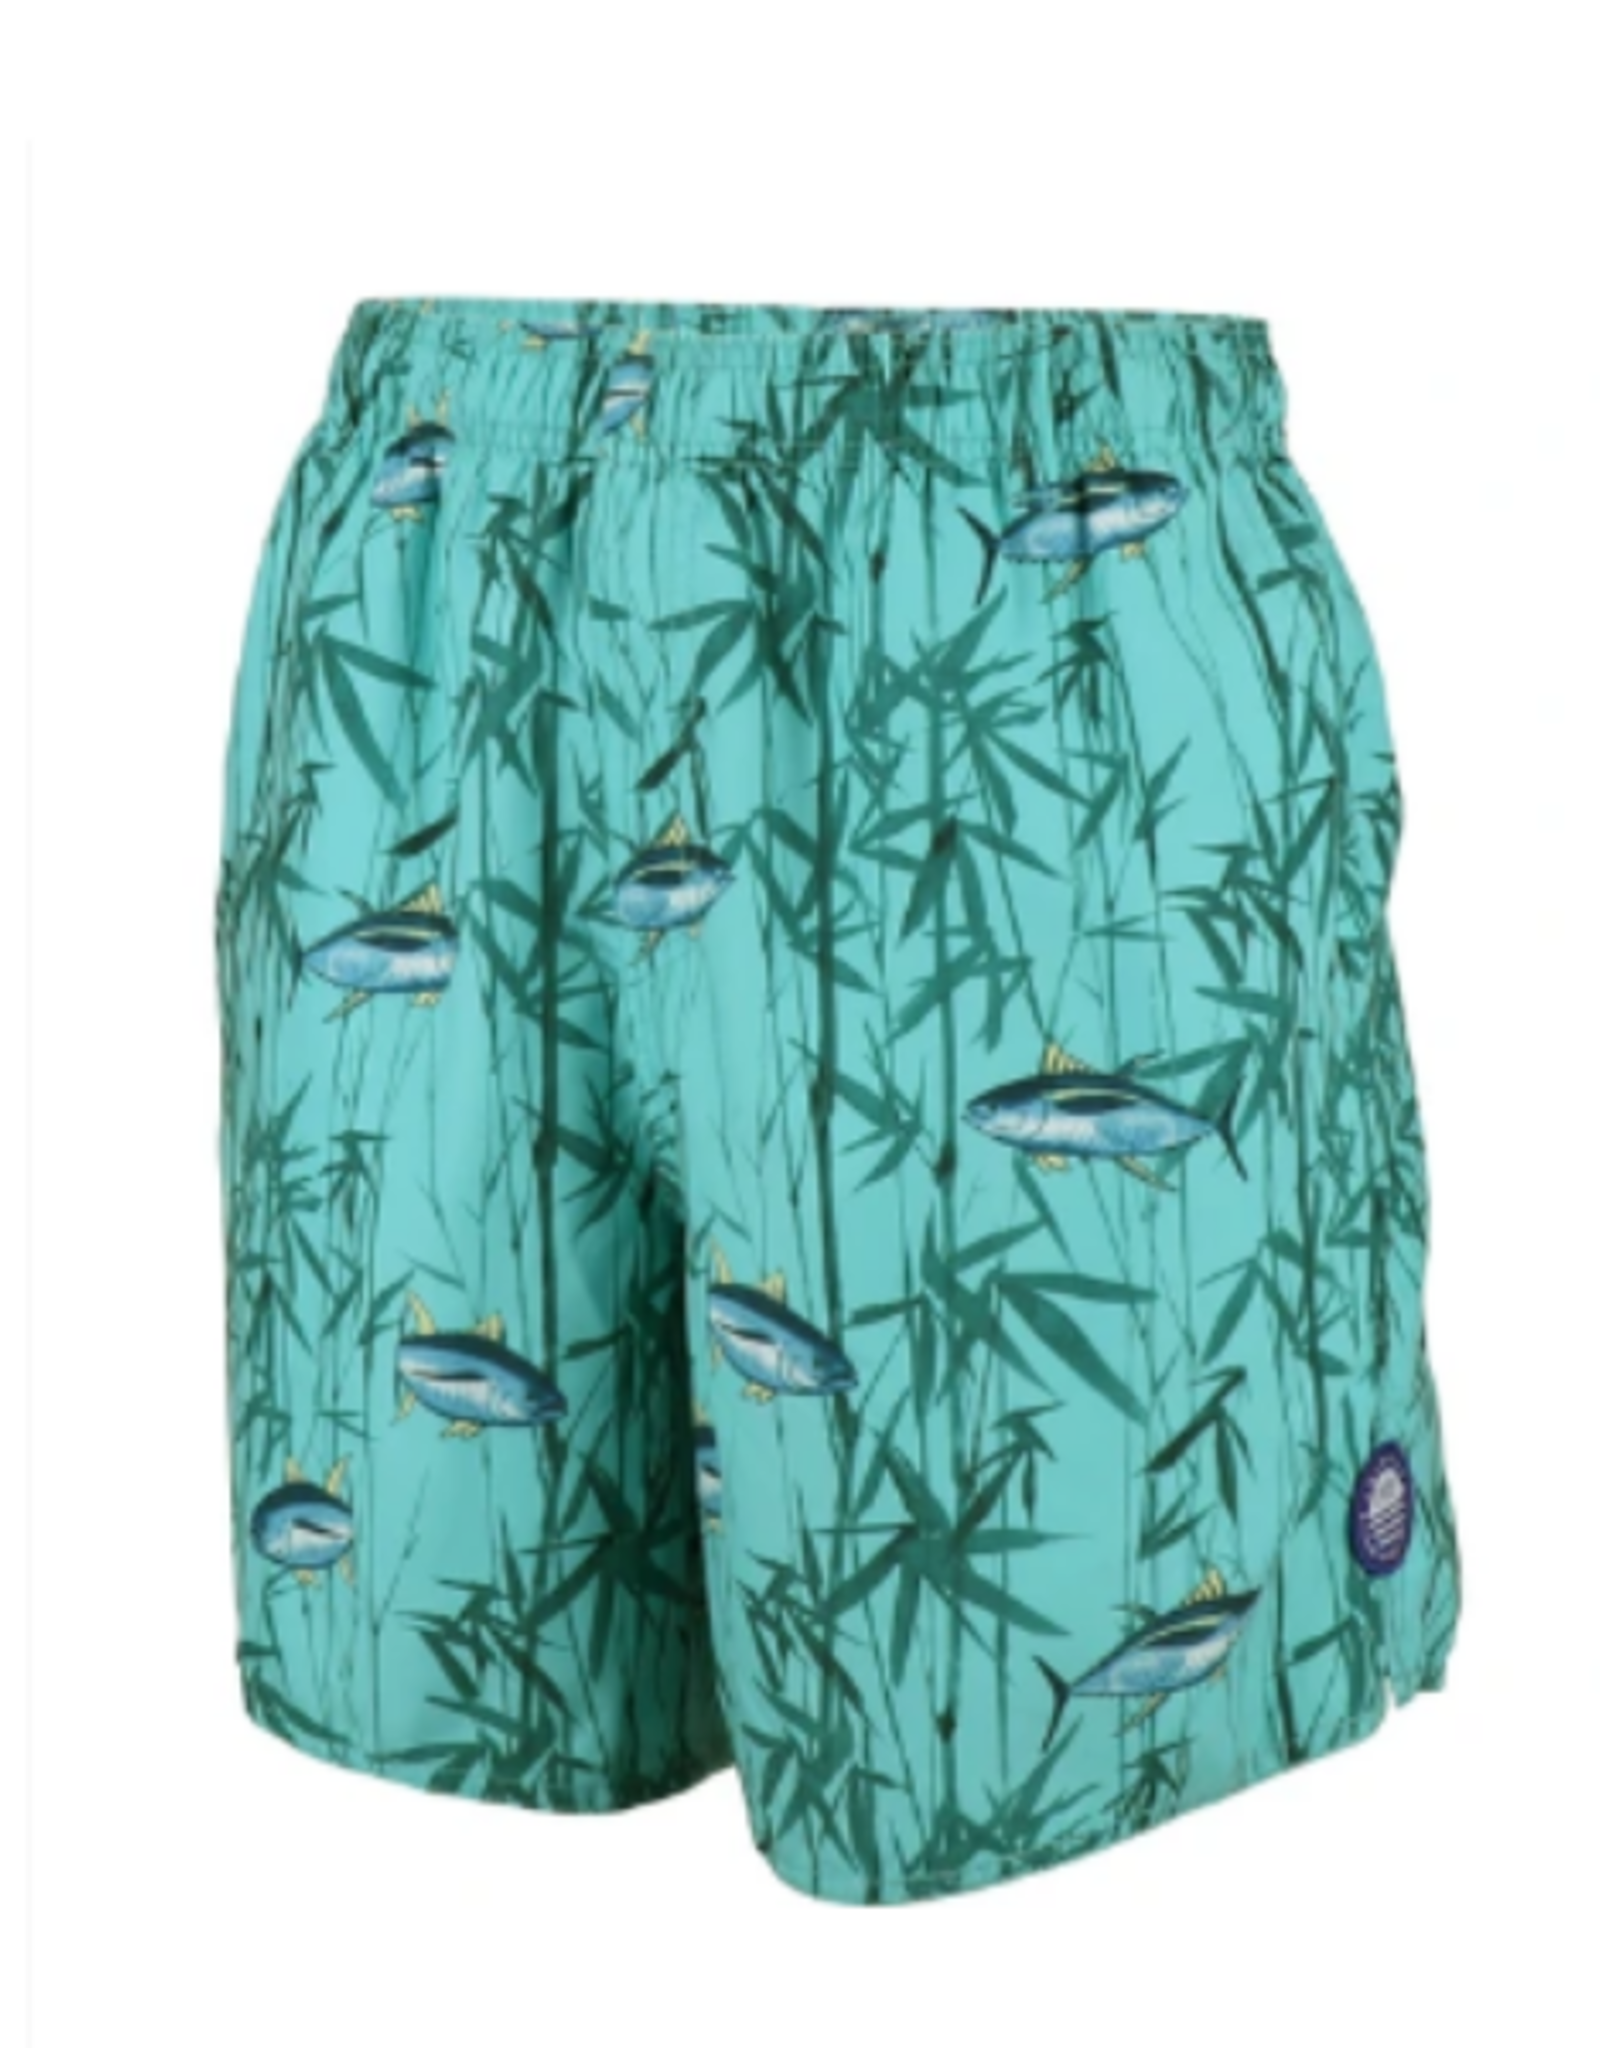 Aftco. Boatbar Swim Trunks Bahama